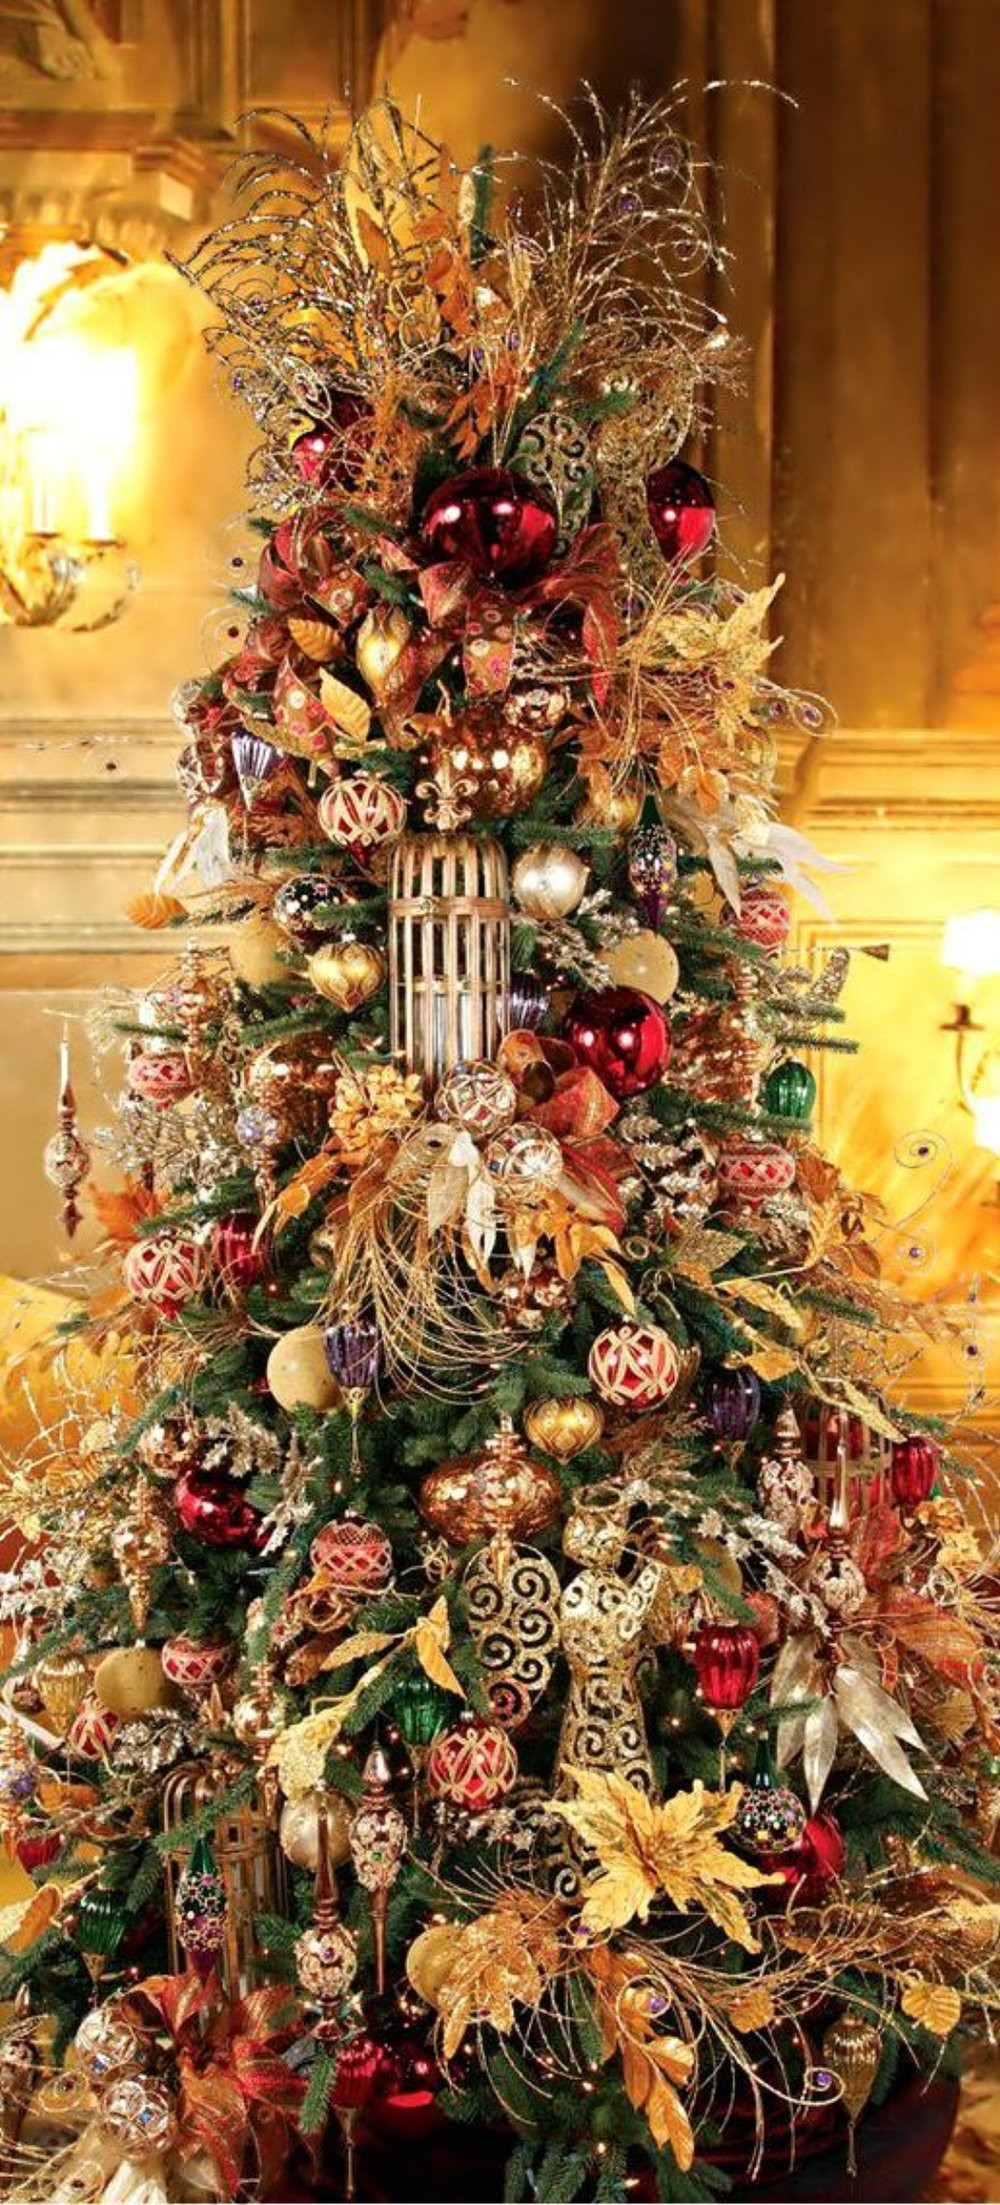 Christmas Decorators New 20 Awesome Christmas Tree Decorating Ideas & Inspirations Of Christmas Decorators Best Of Christmas Decoration S